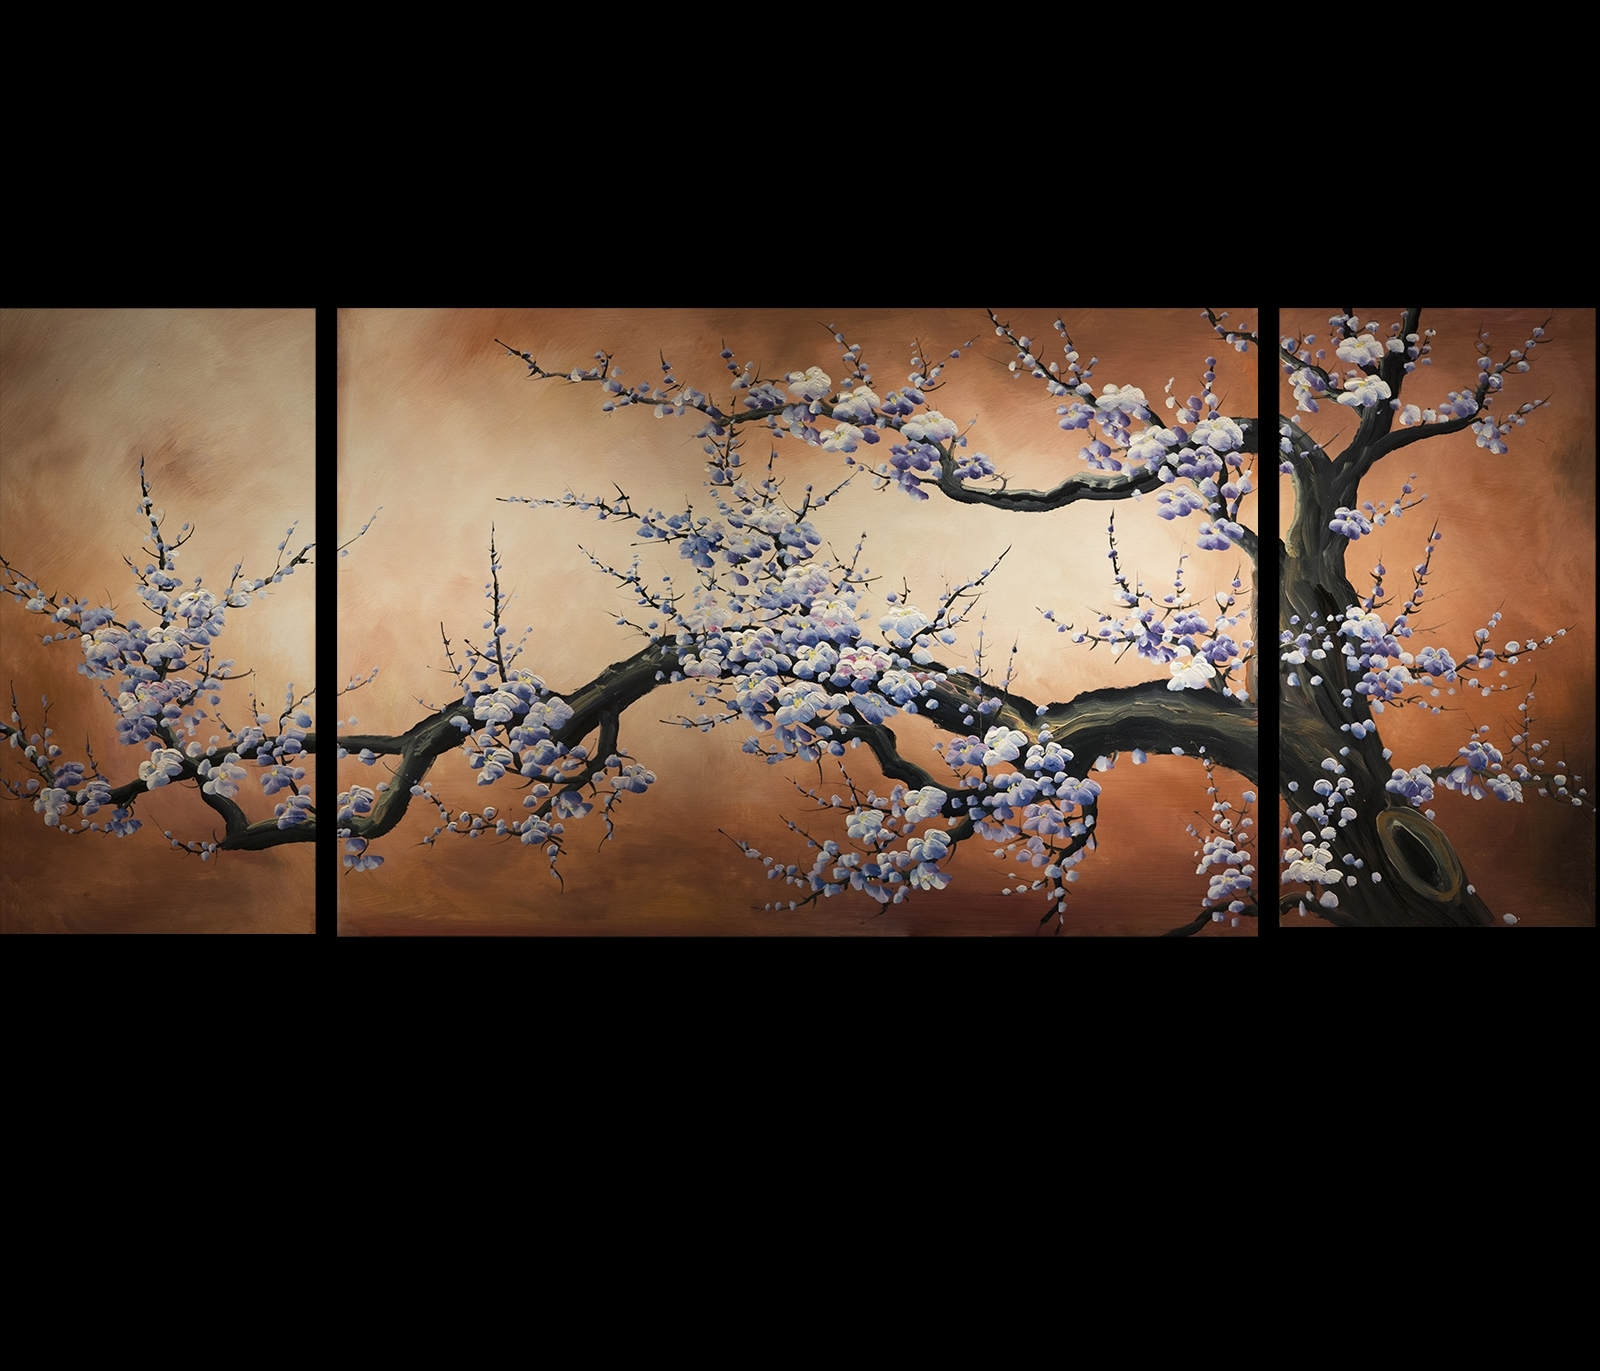 Abstract Art Prints On Canvas Modern Art Cherry Blossom Painting Within Recent Cherry Blossom Oil Painting Modern Abstract Wall Art (View 4 of 20)